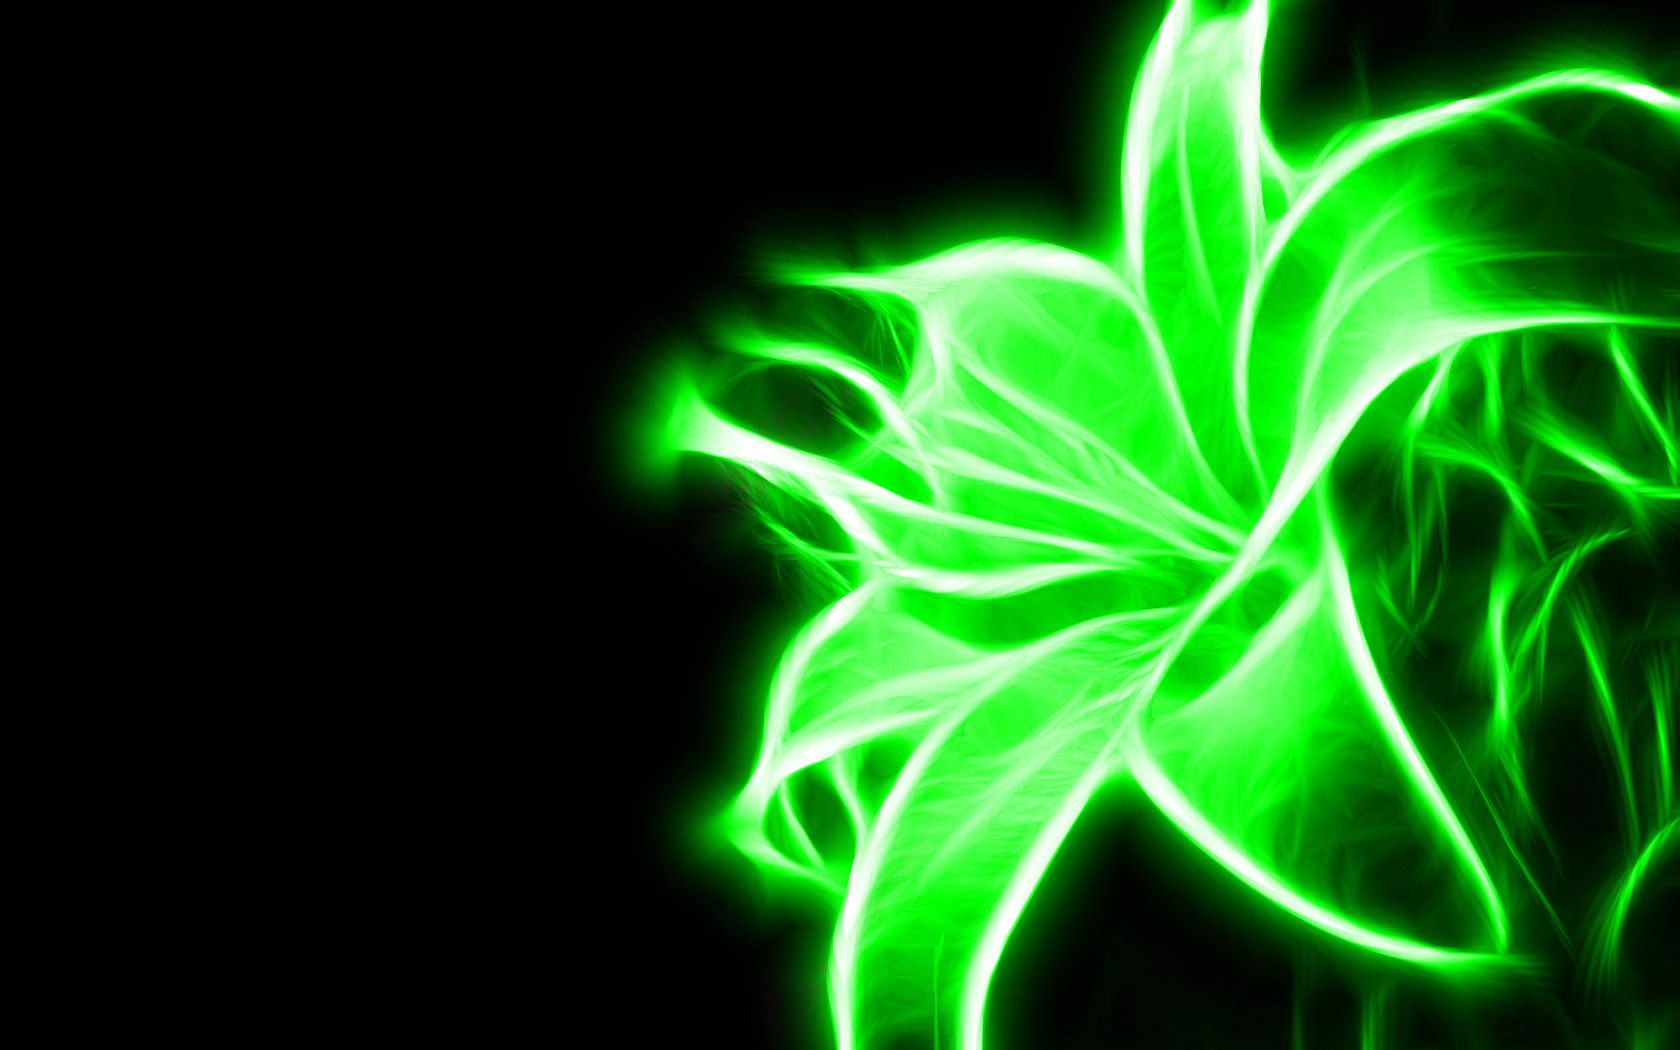 Neon Green Flowers Neon Green Flower Green Wallpaper 20988898 Fanpop Fanclubs Neon Flowers Neon Wallpaper Neon Backgrounds